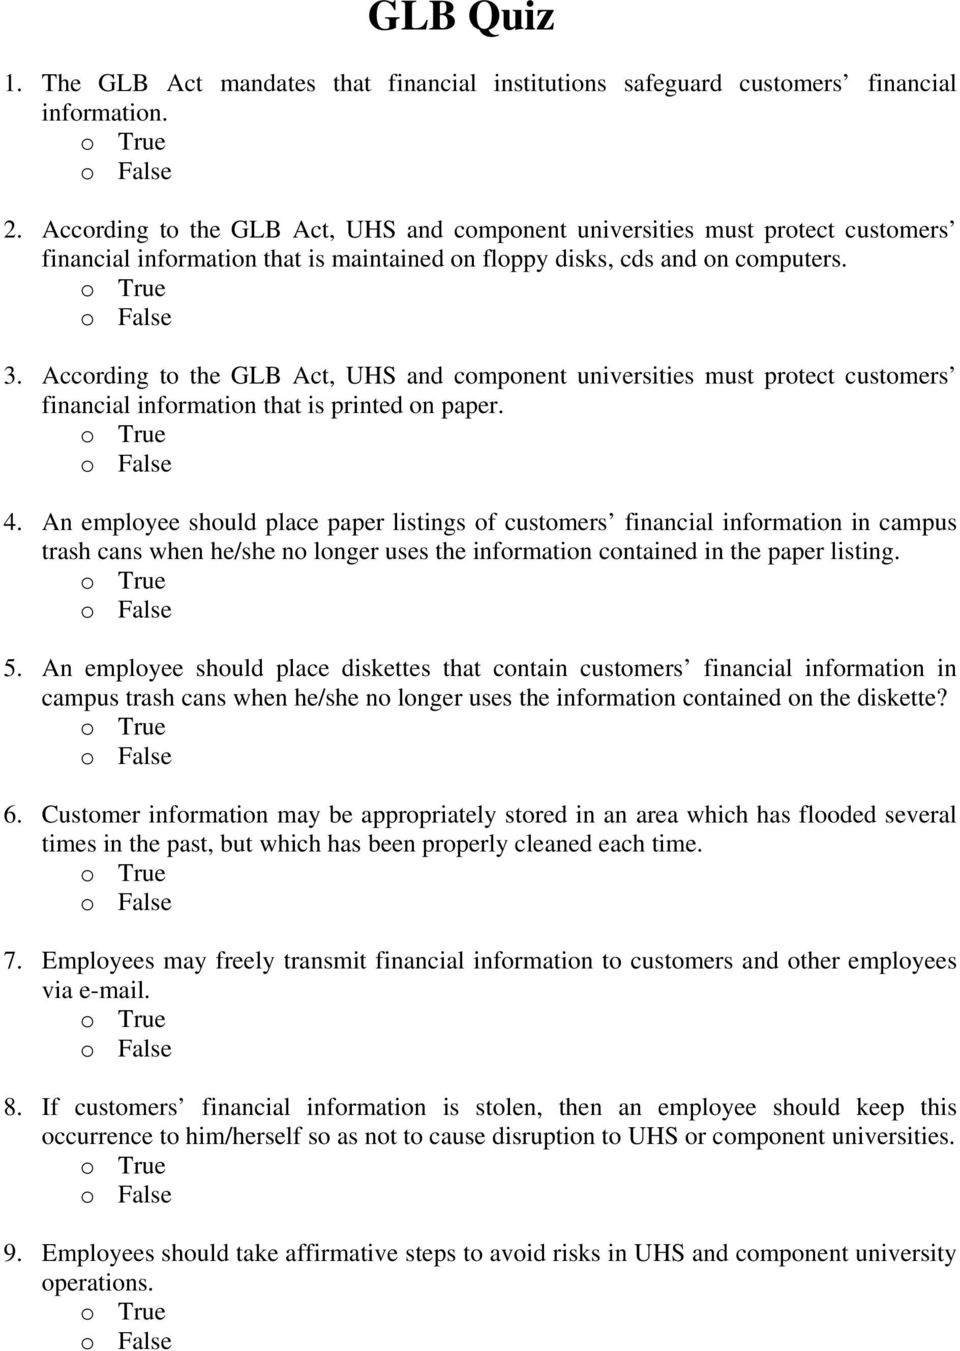 According to the GLB Act, UHS and component universities must protect customers financial information that is printed on paper. 4.